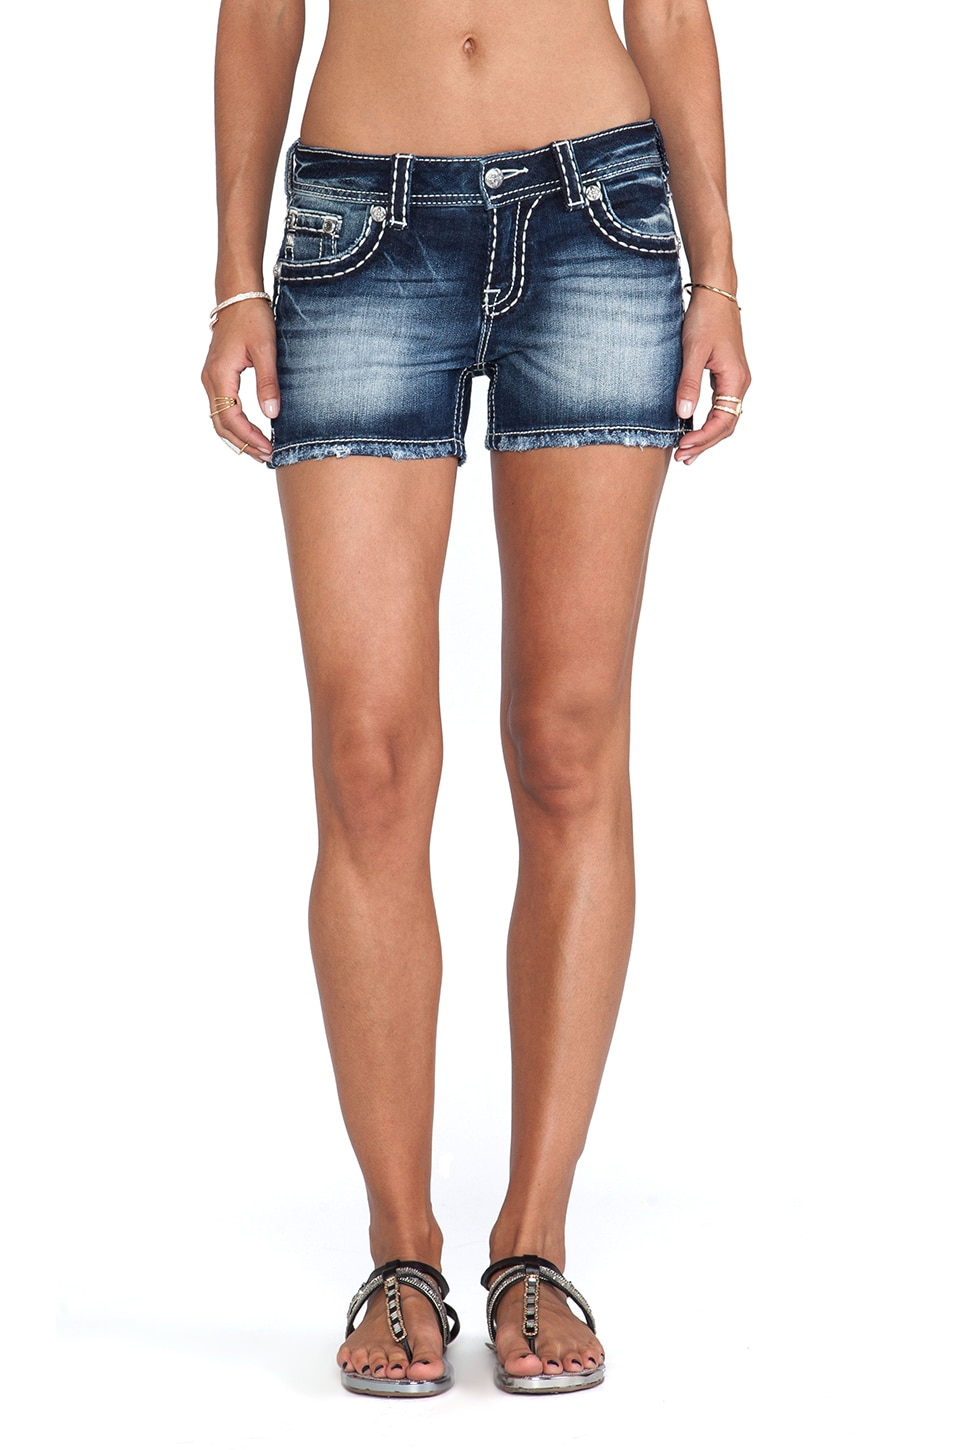 Miss Me Jeans Shorts in MK 286